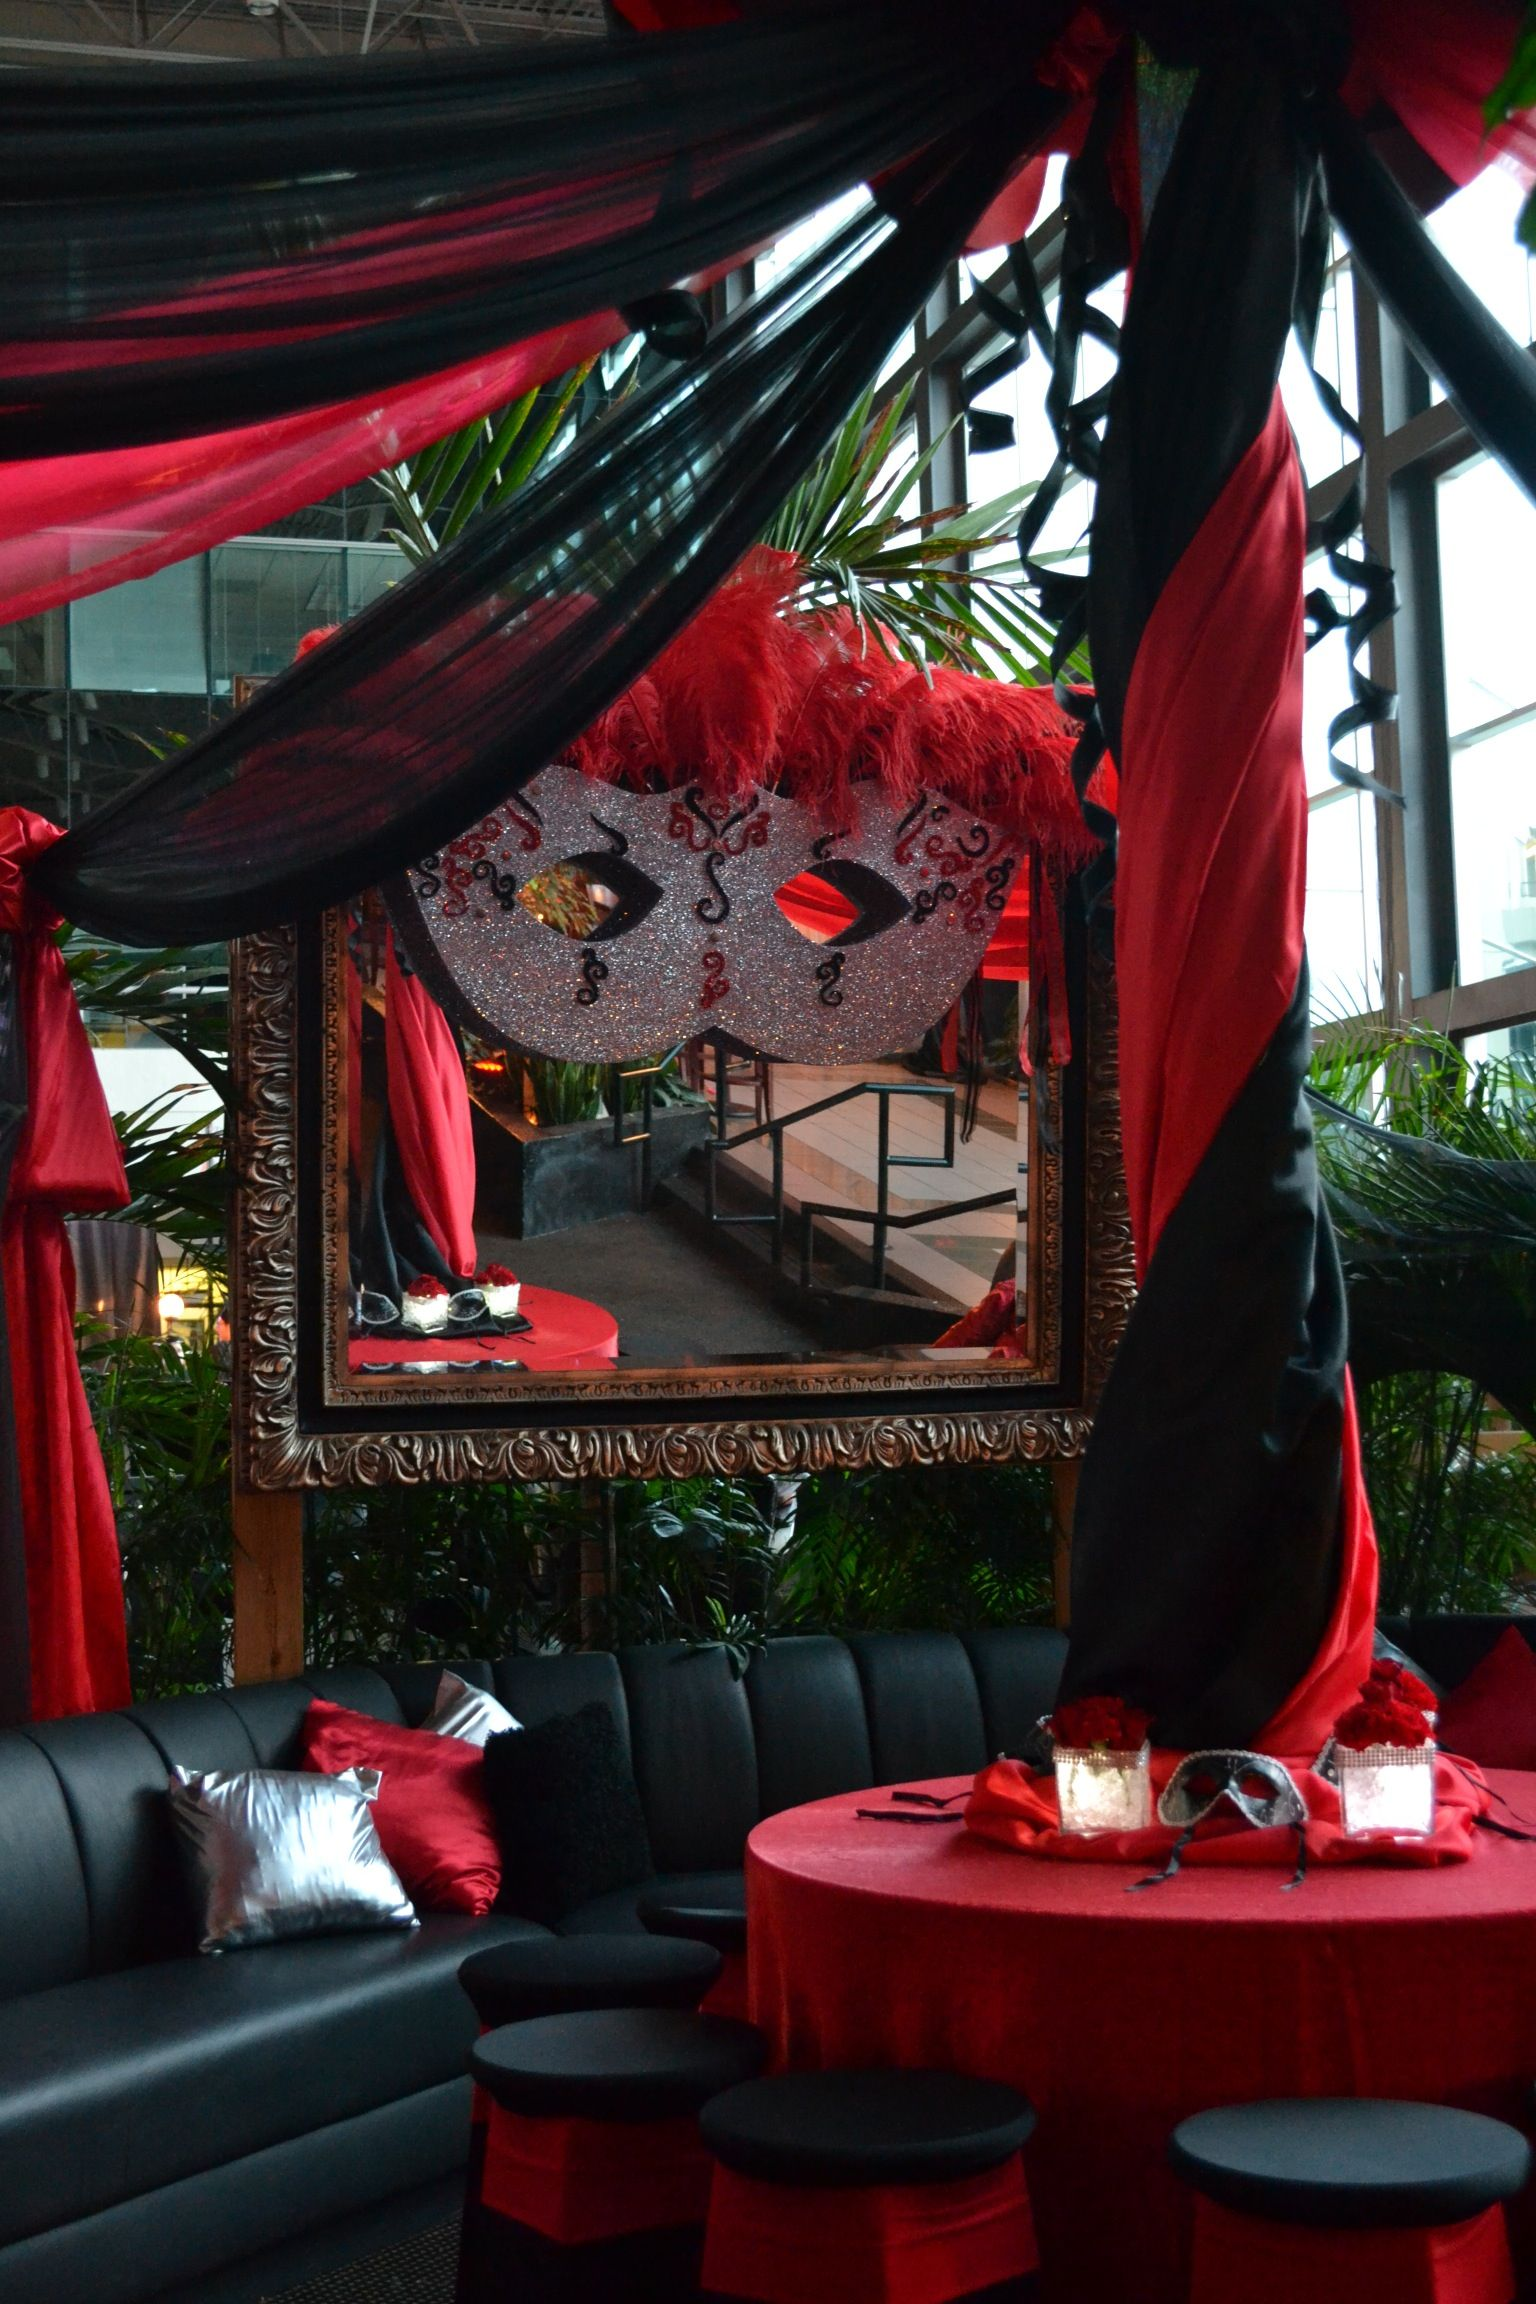 Masquerade Ball Prom Decorations Red And Black Decor At A Masquerade Ballparty Httpwww